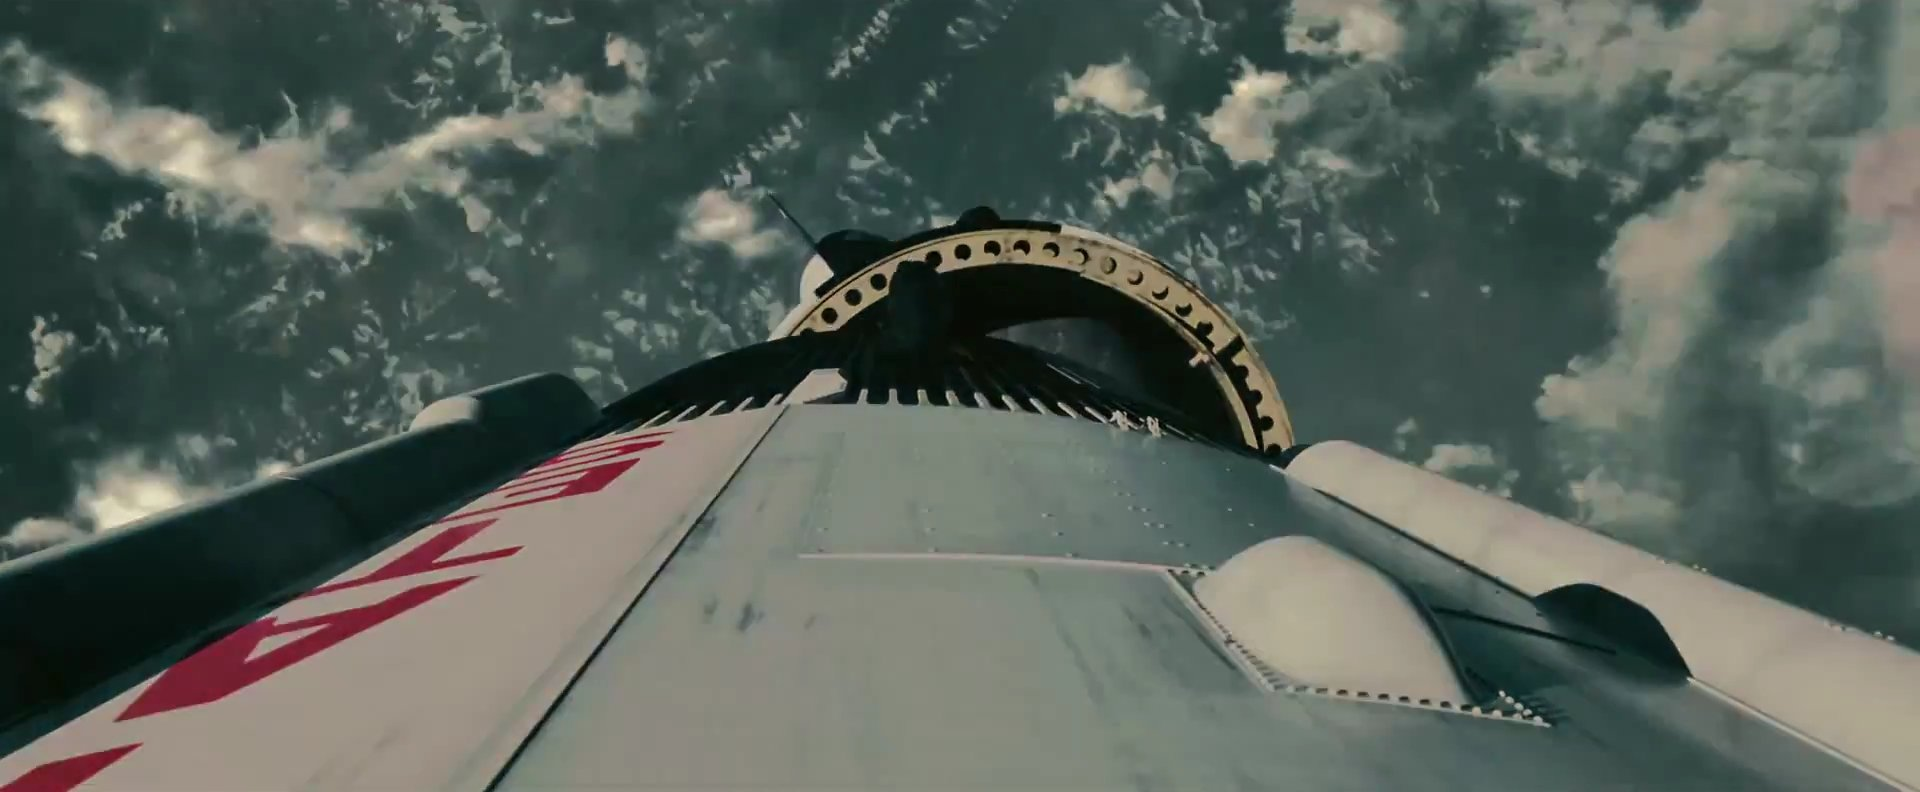 Saturn V to the stars